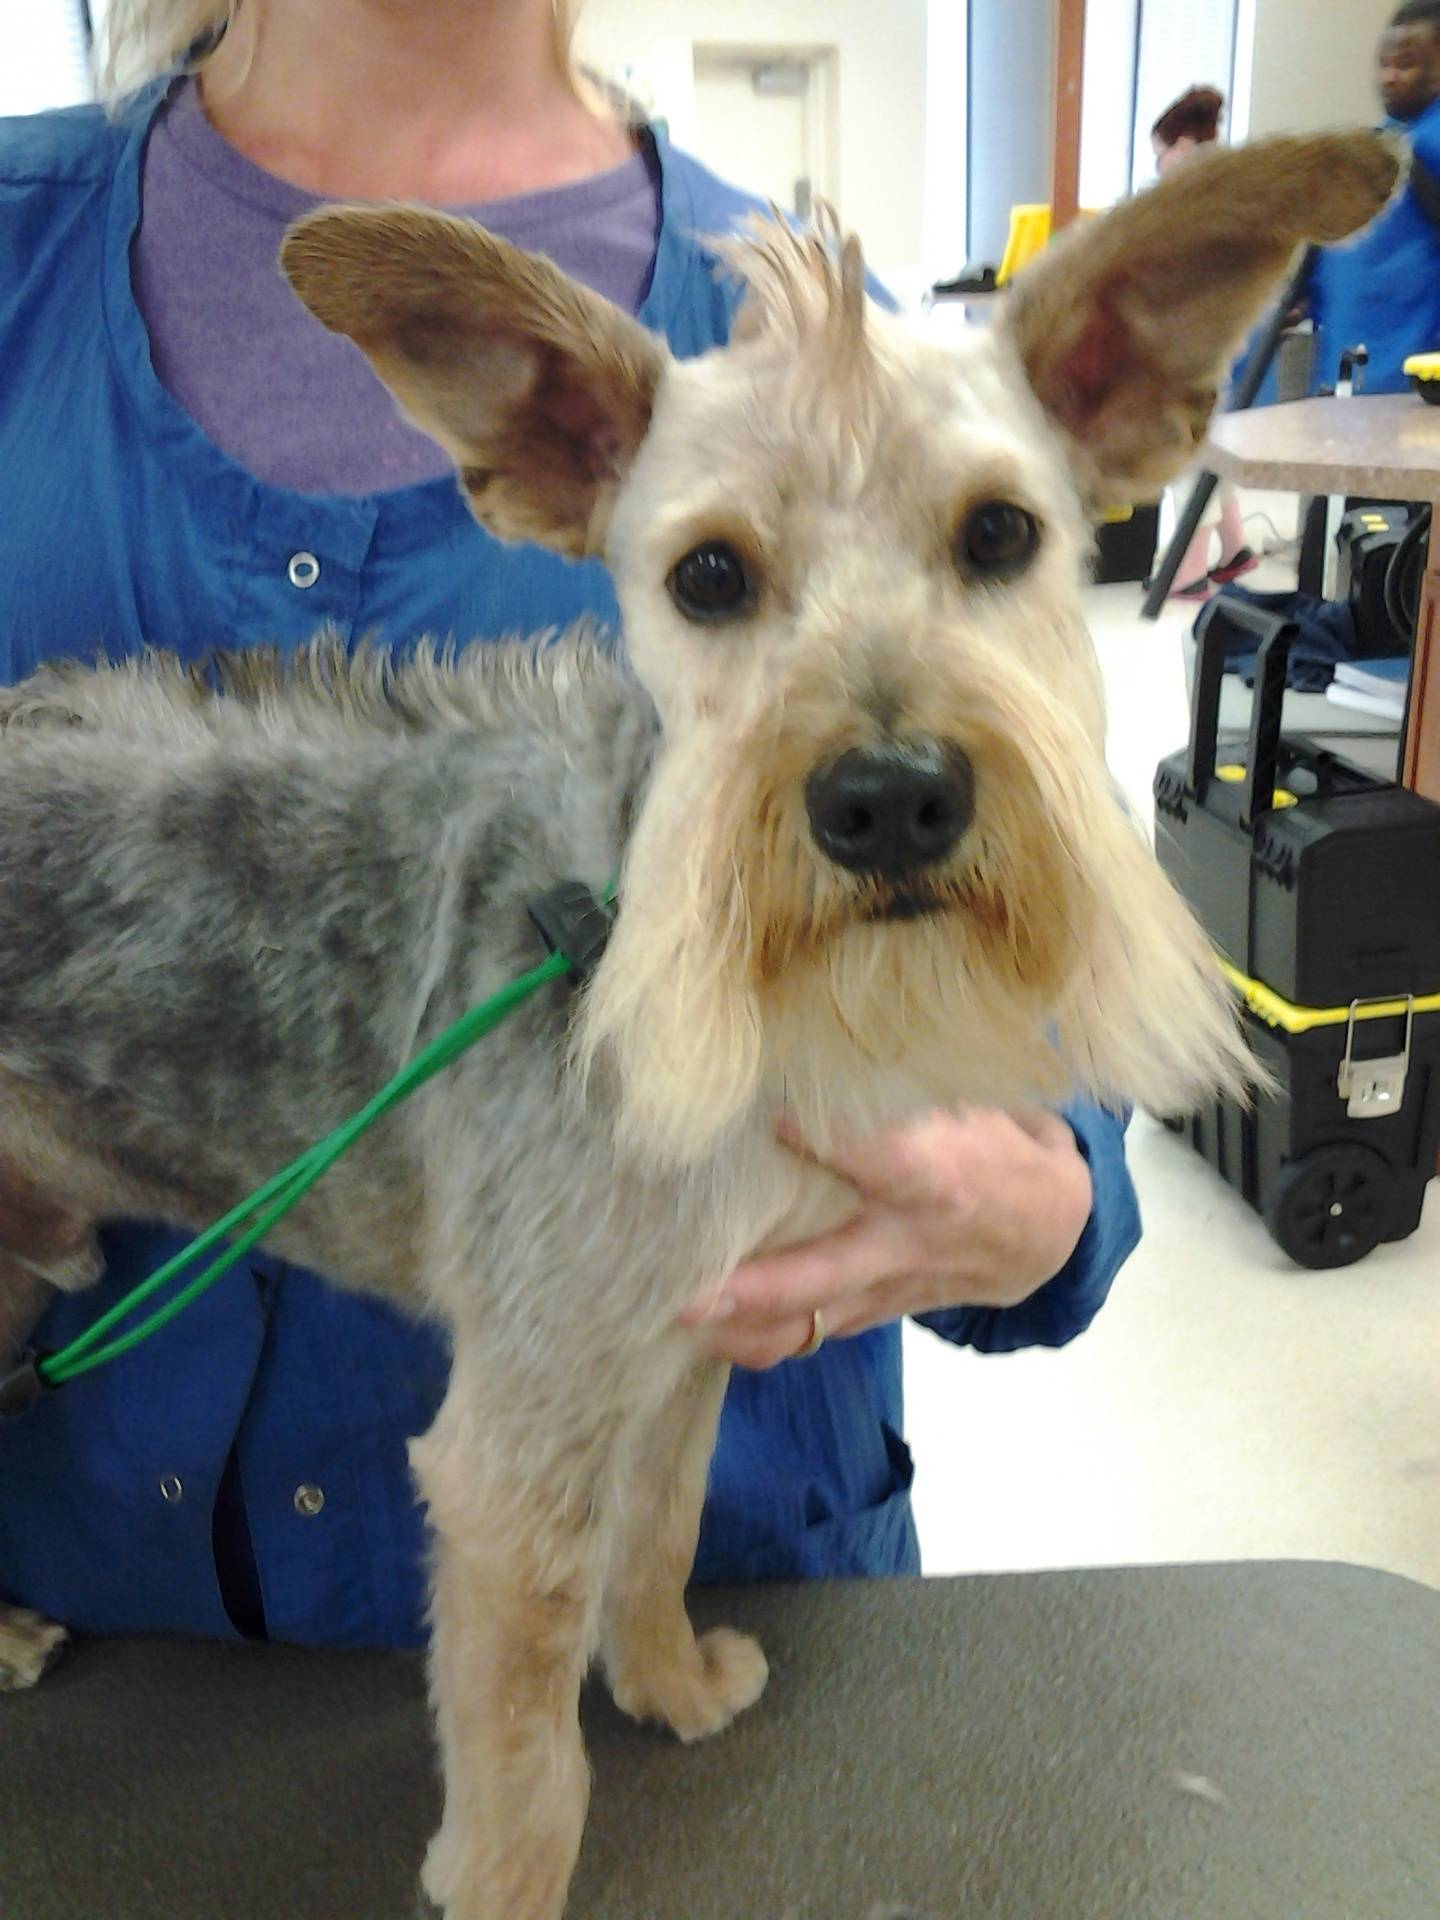 mixed breed- in a Schnauzer pattern, with a full body mohawk